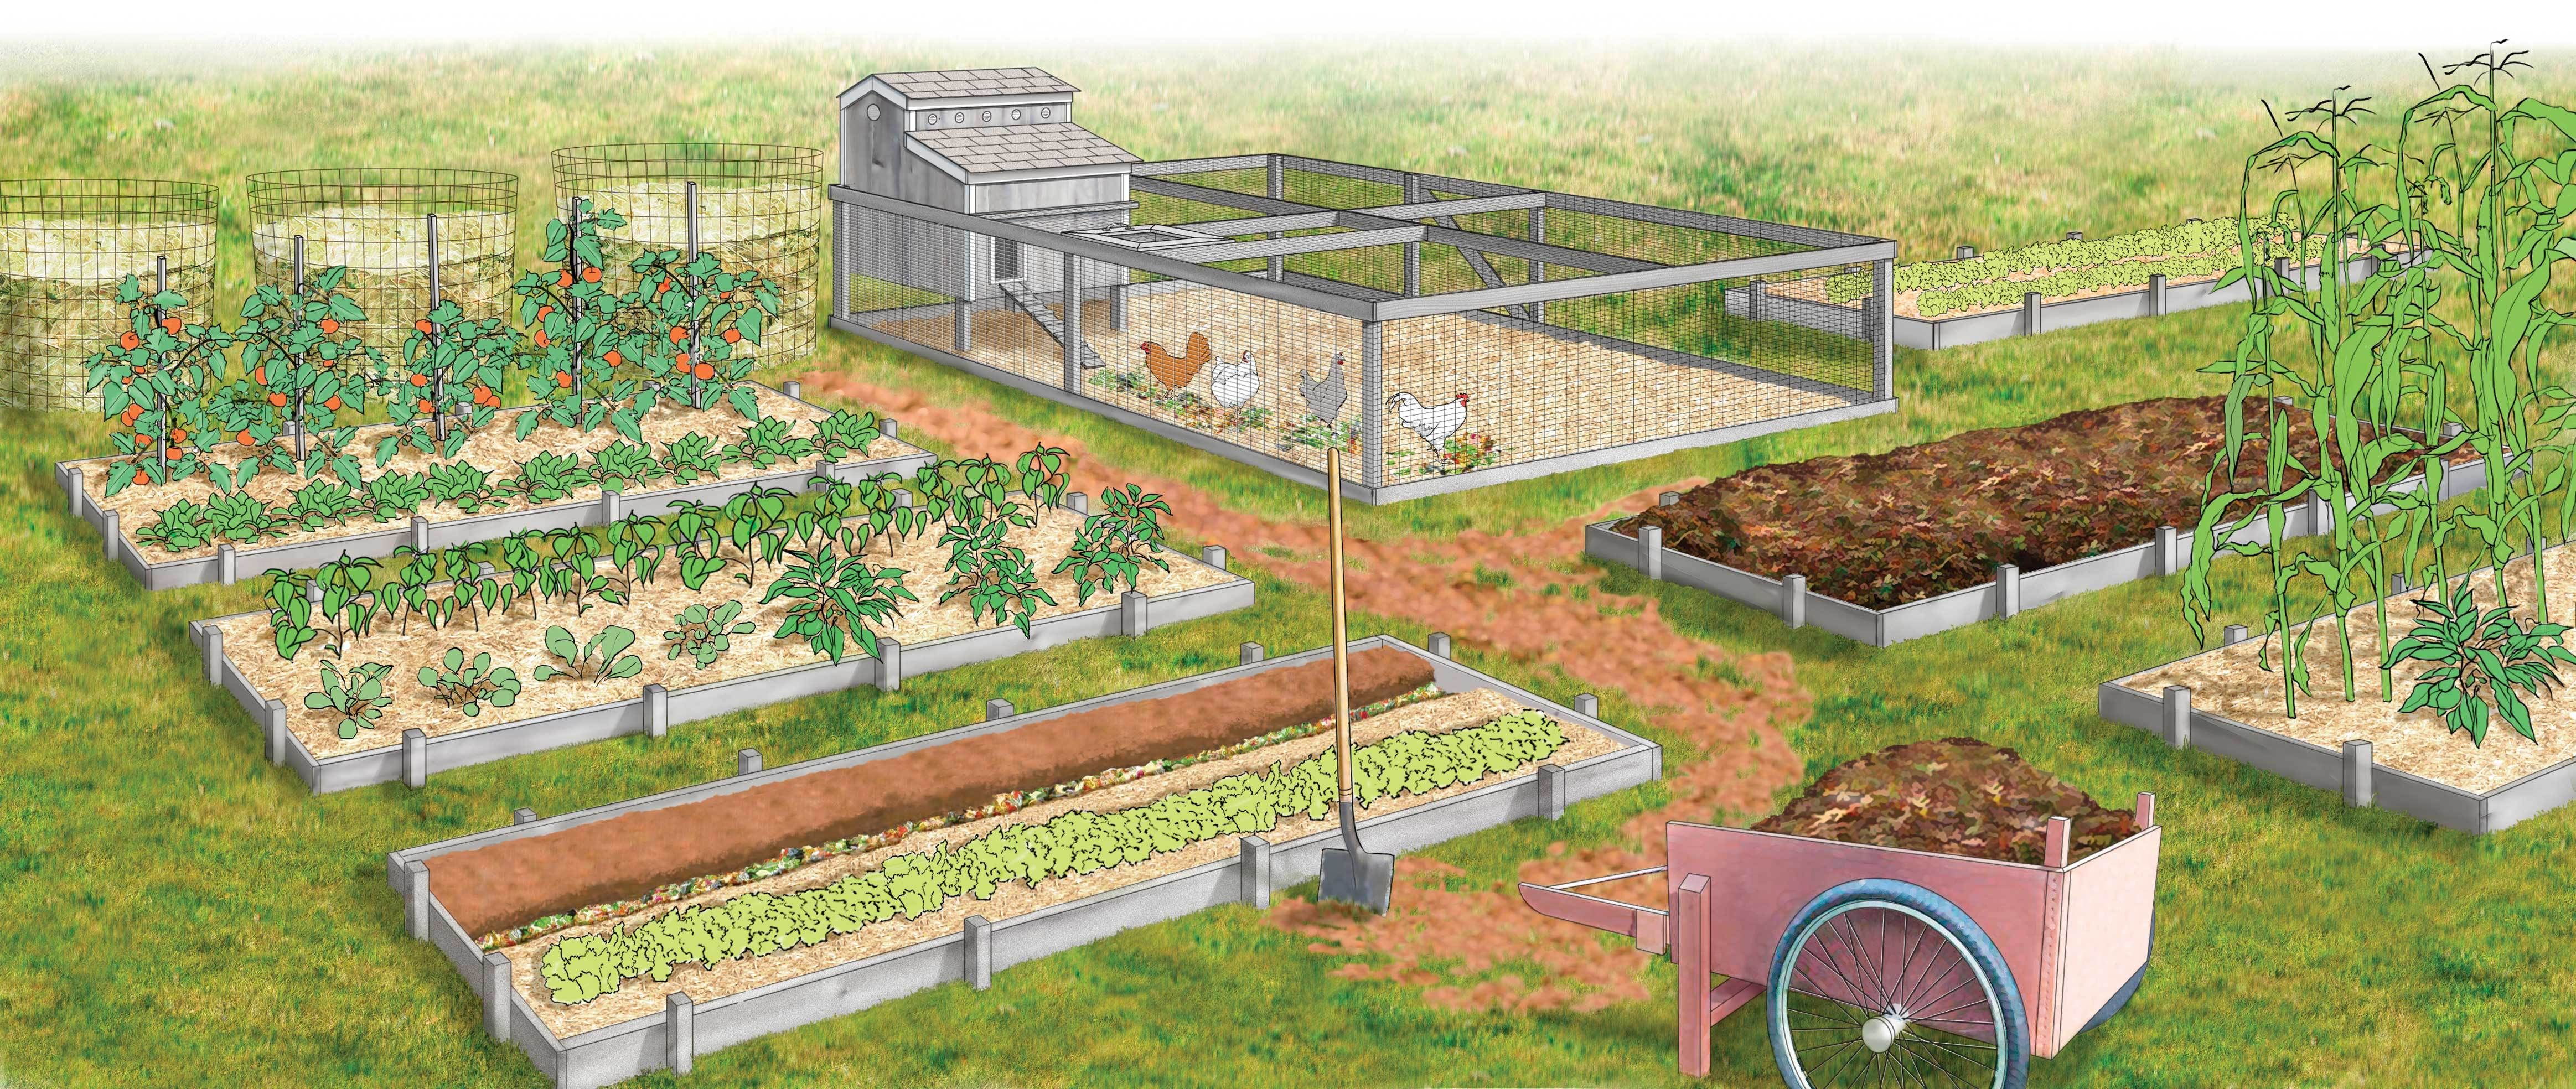 28 Farm Layout Design Ideas To Inspire Your Homestead 400 x 300